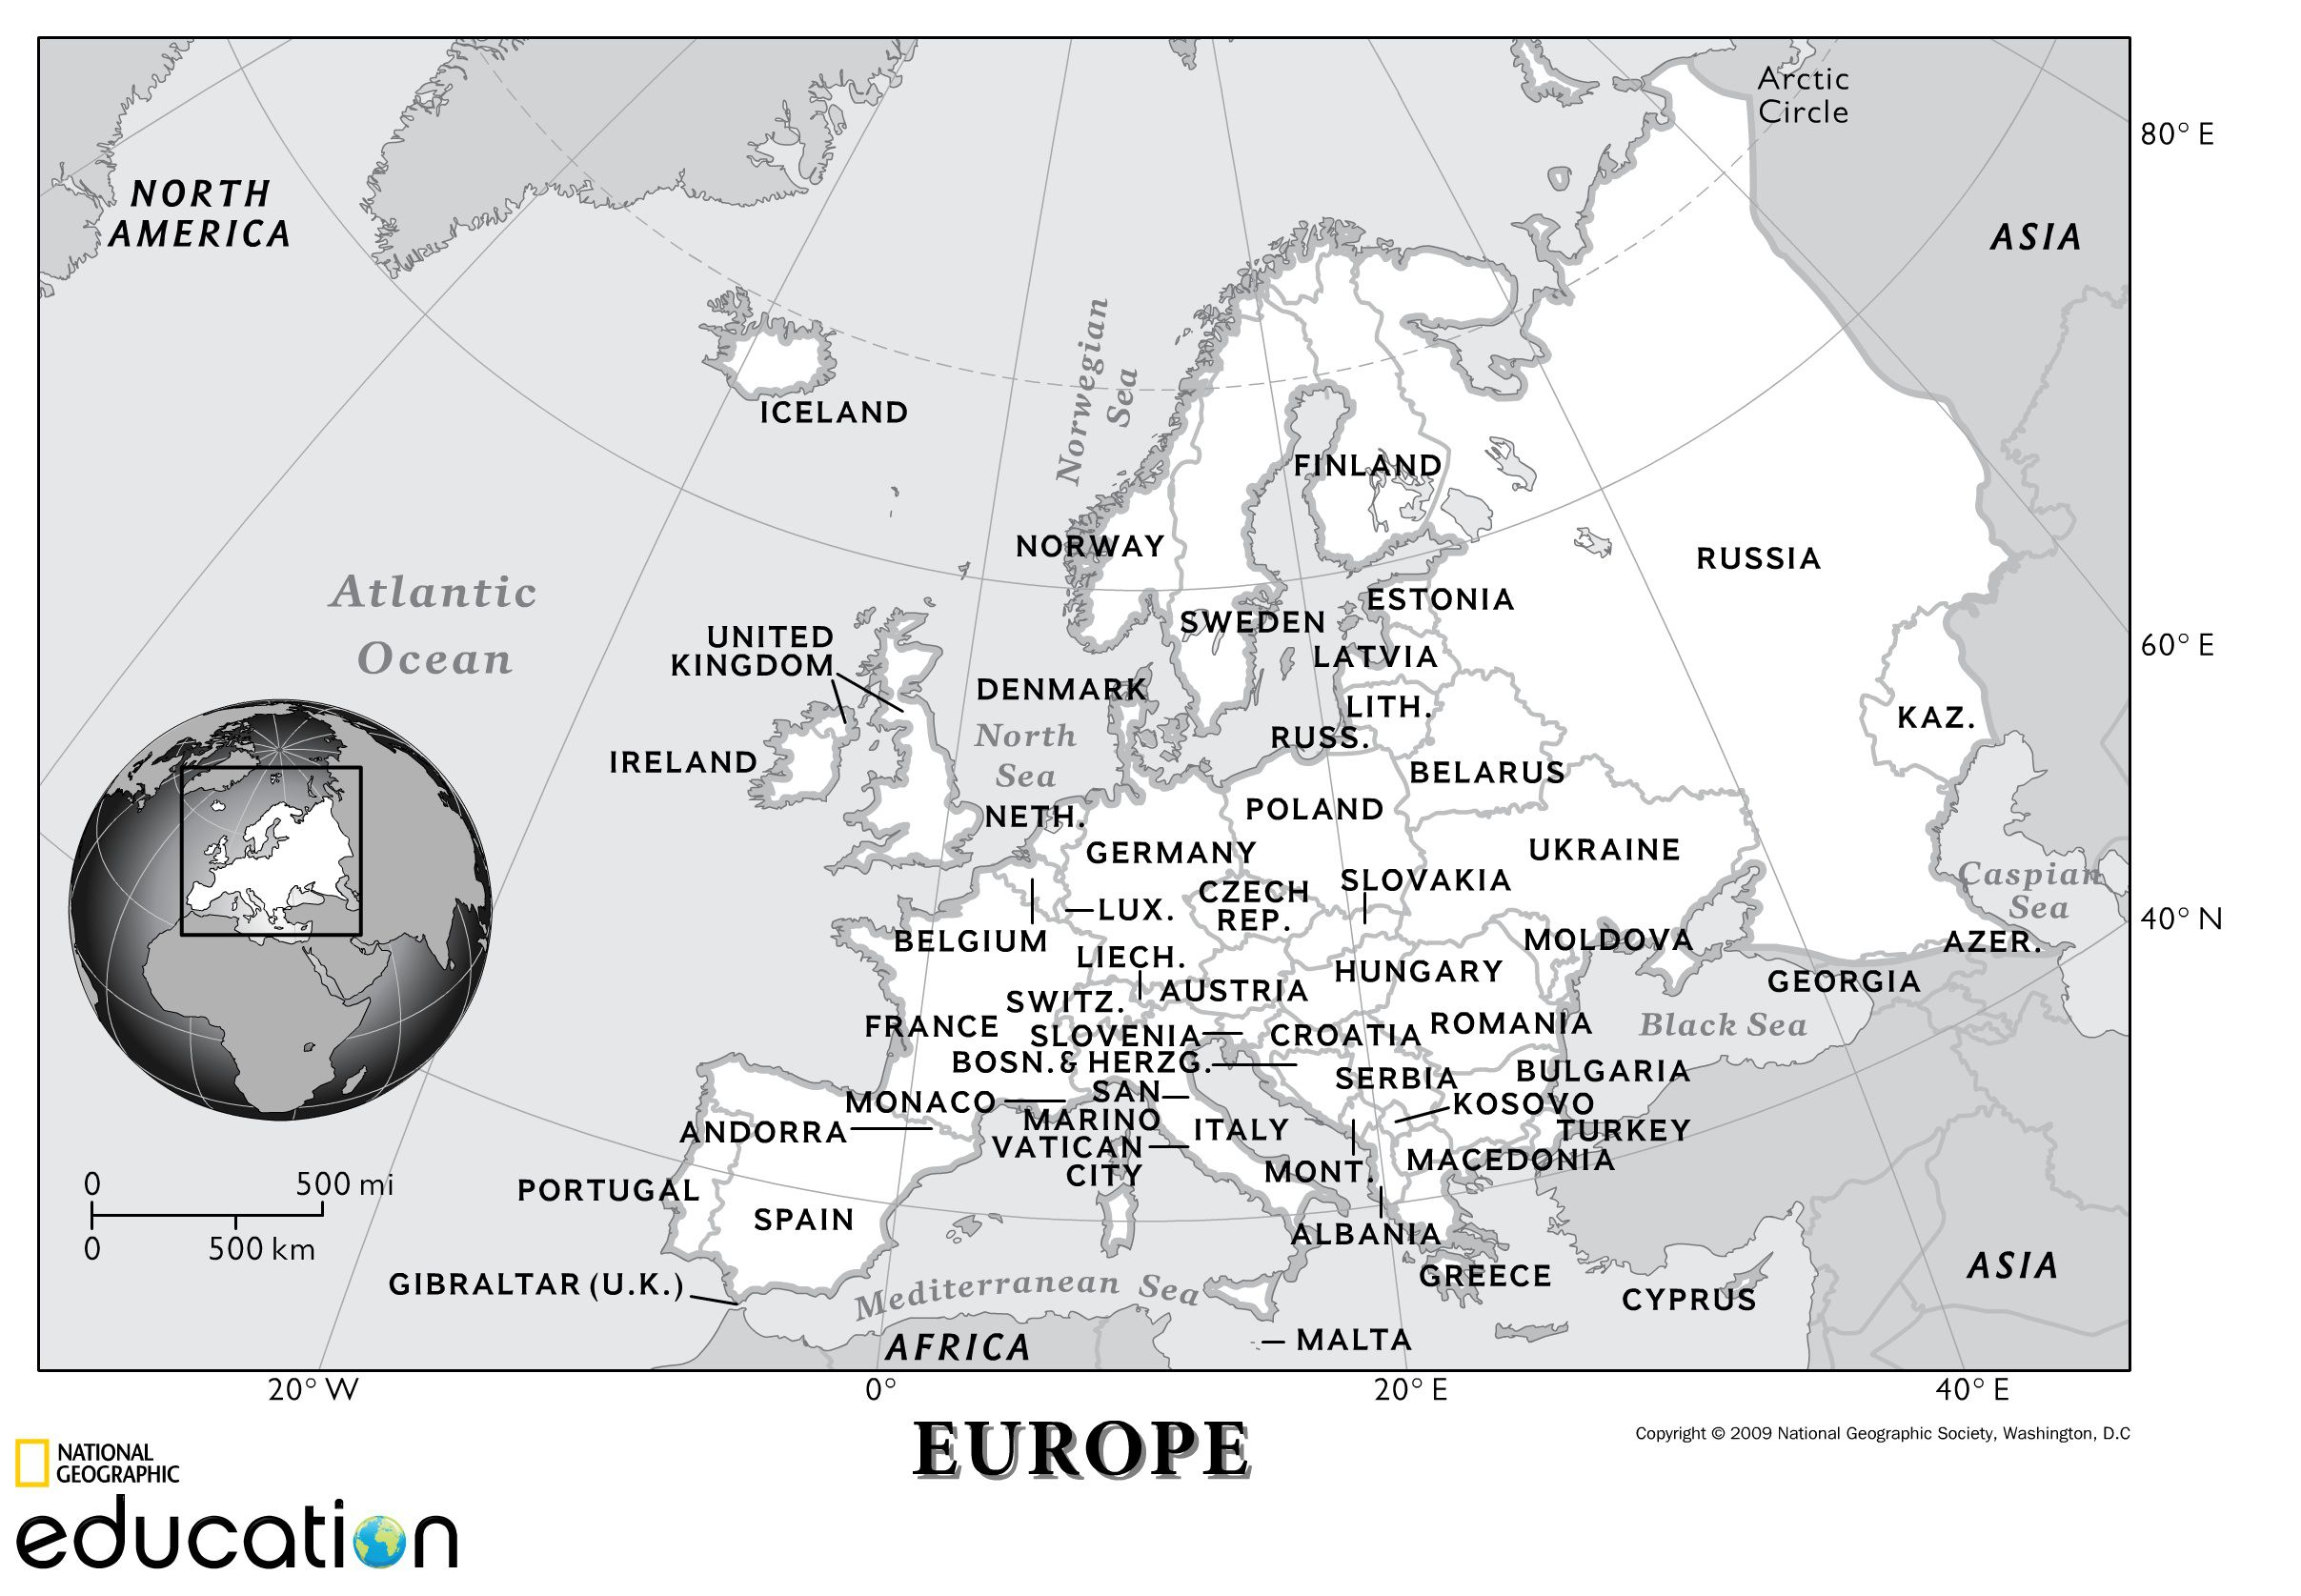 Europe: Geography | National Geographic Society on aboriginal australian languages map, ethnic group map, world language families map, european language map,